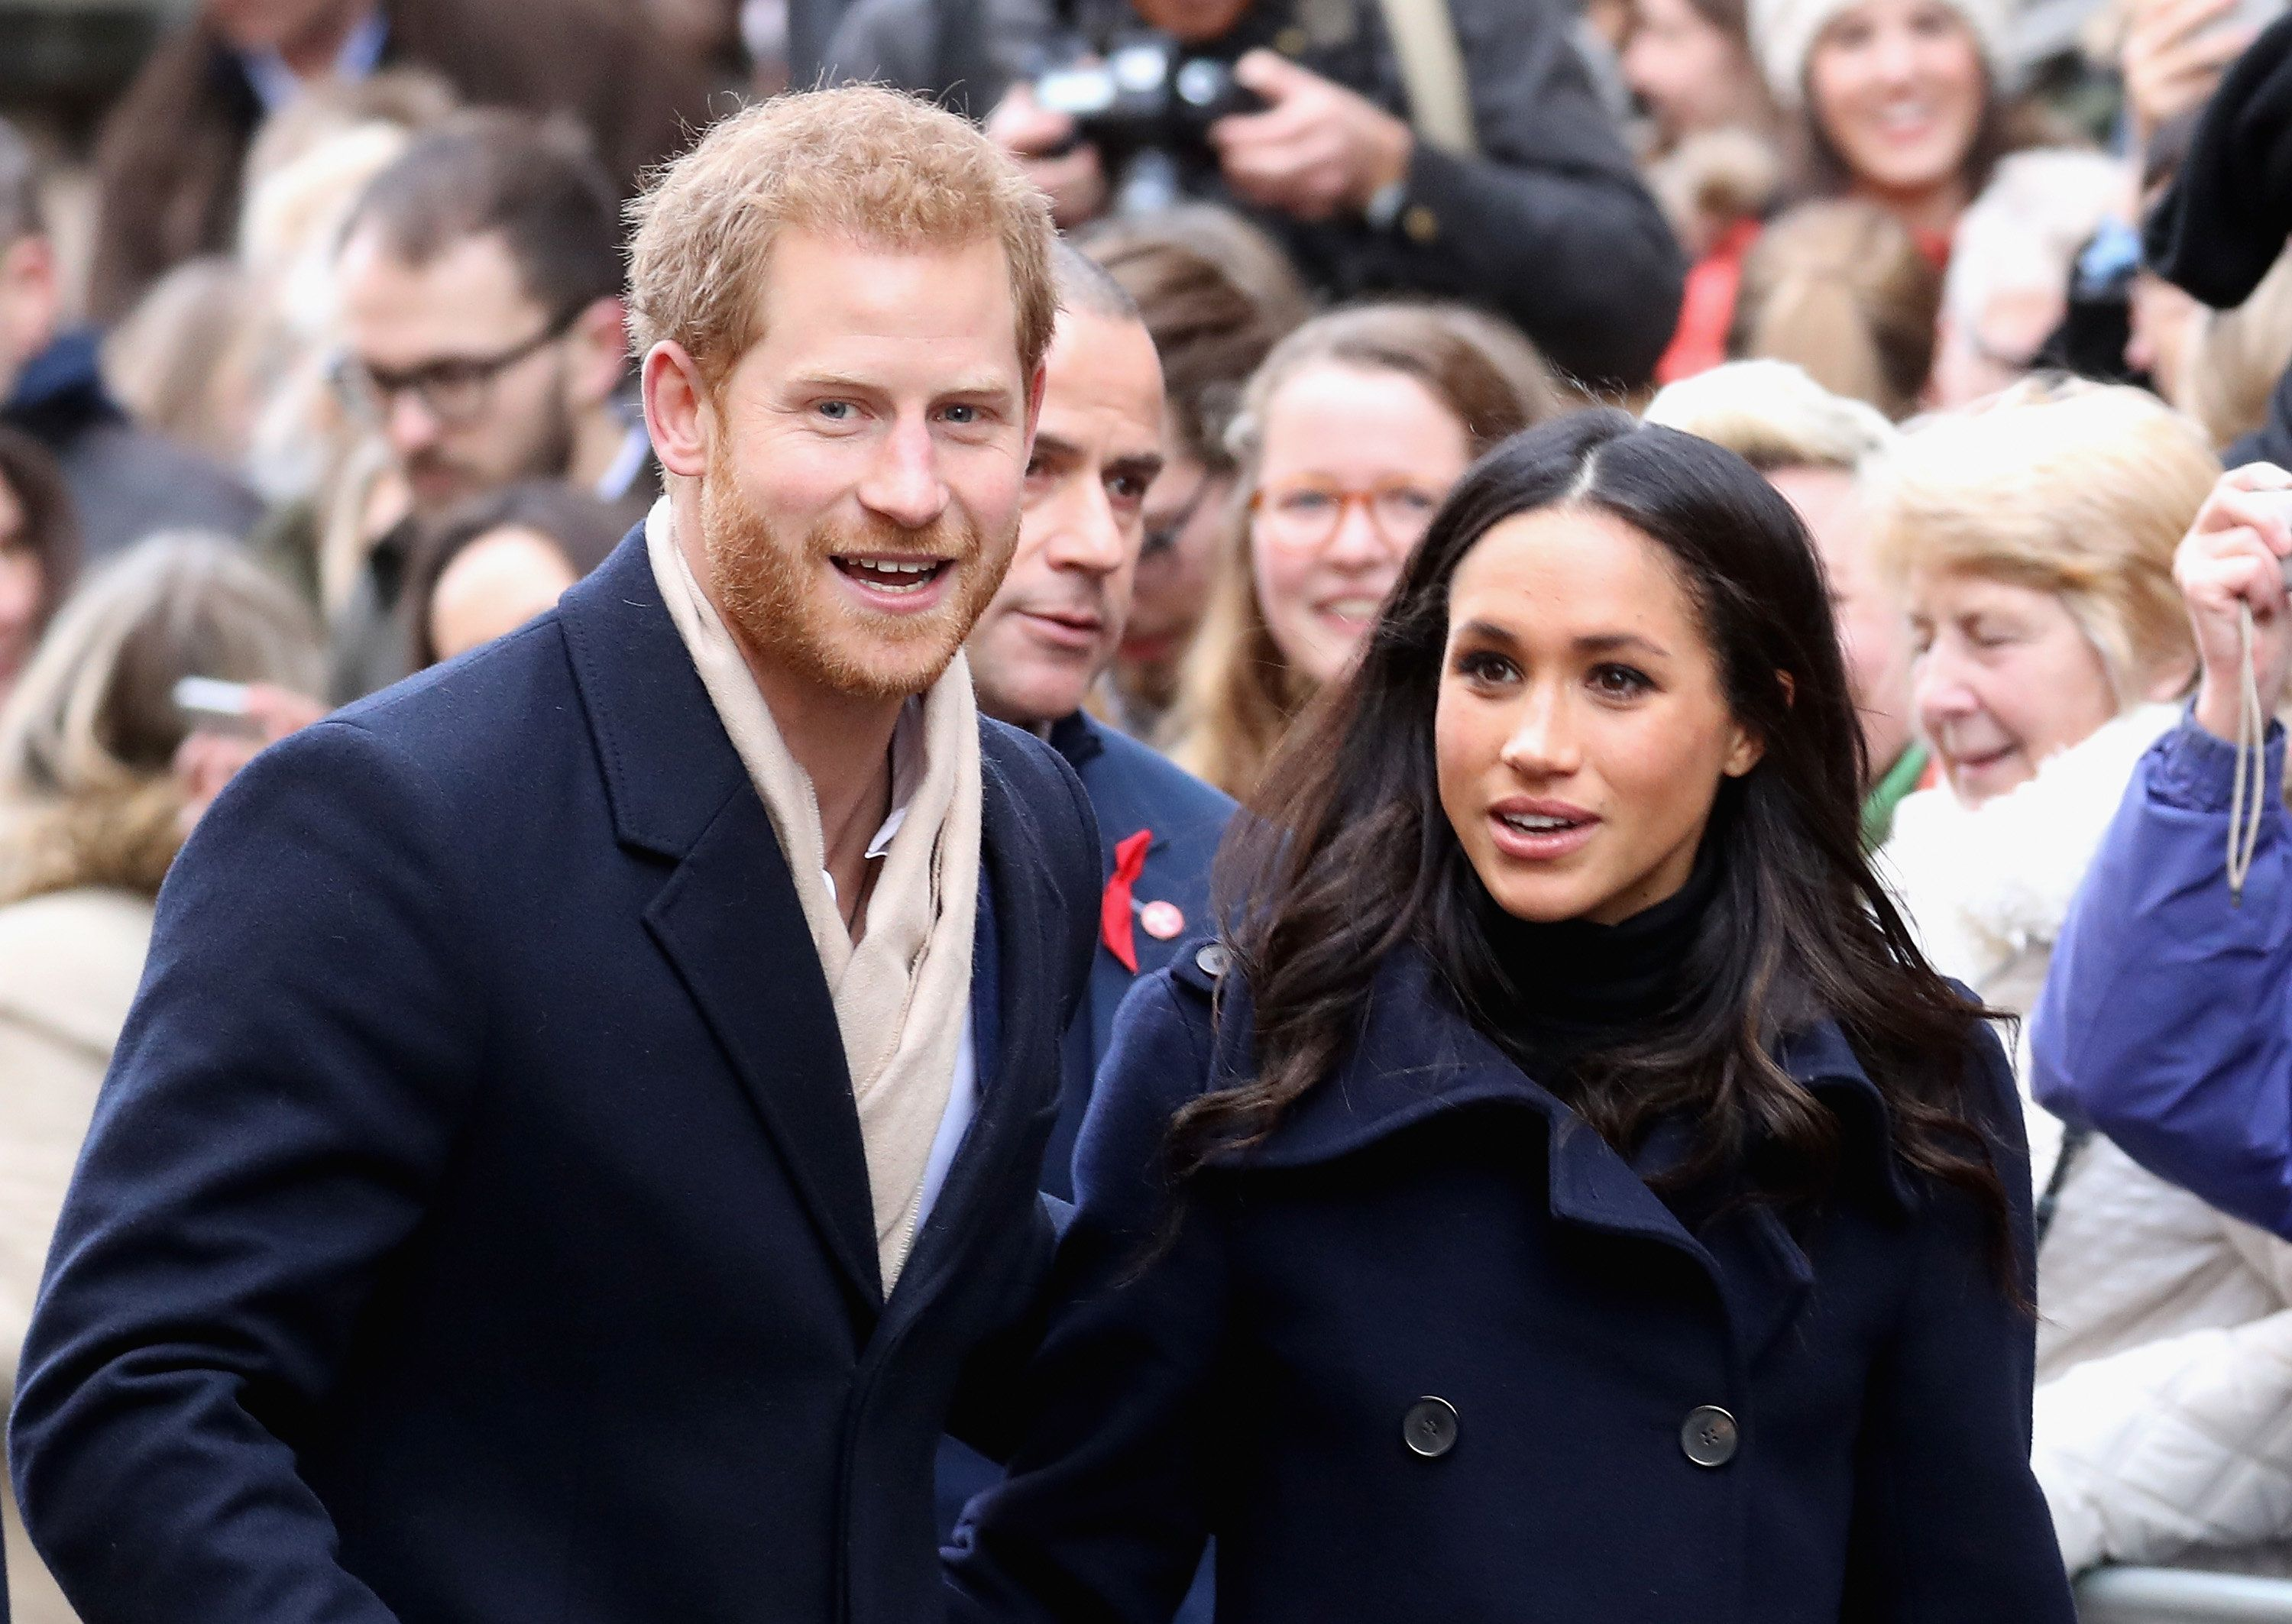 People Are Fuming About The Dress Meghan Markle Wore For Engagement Snaps